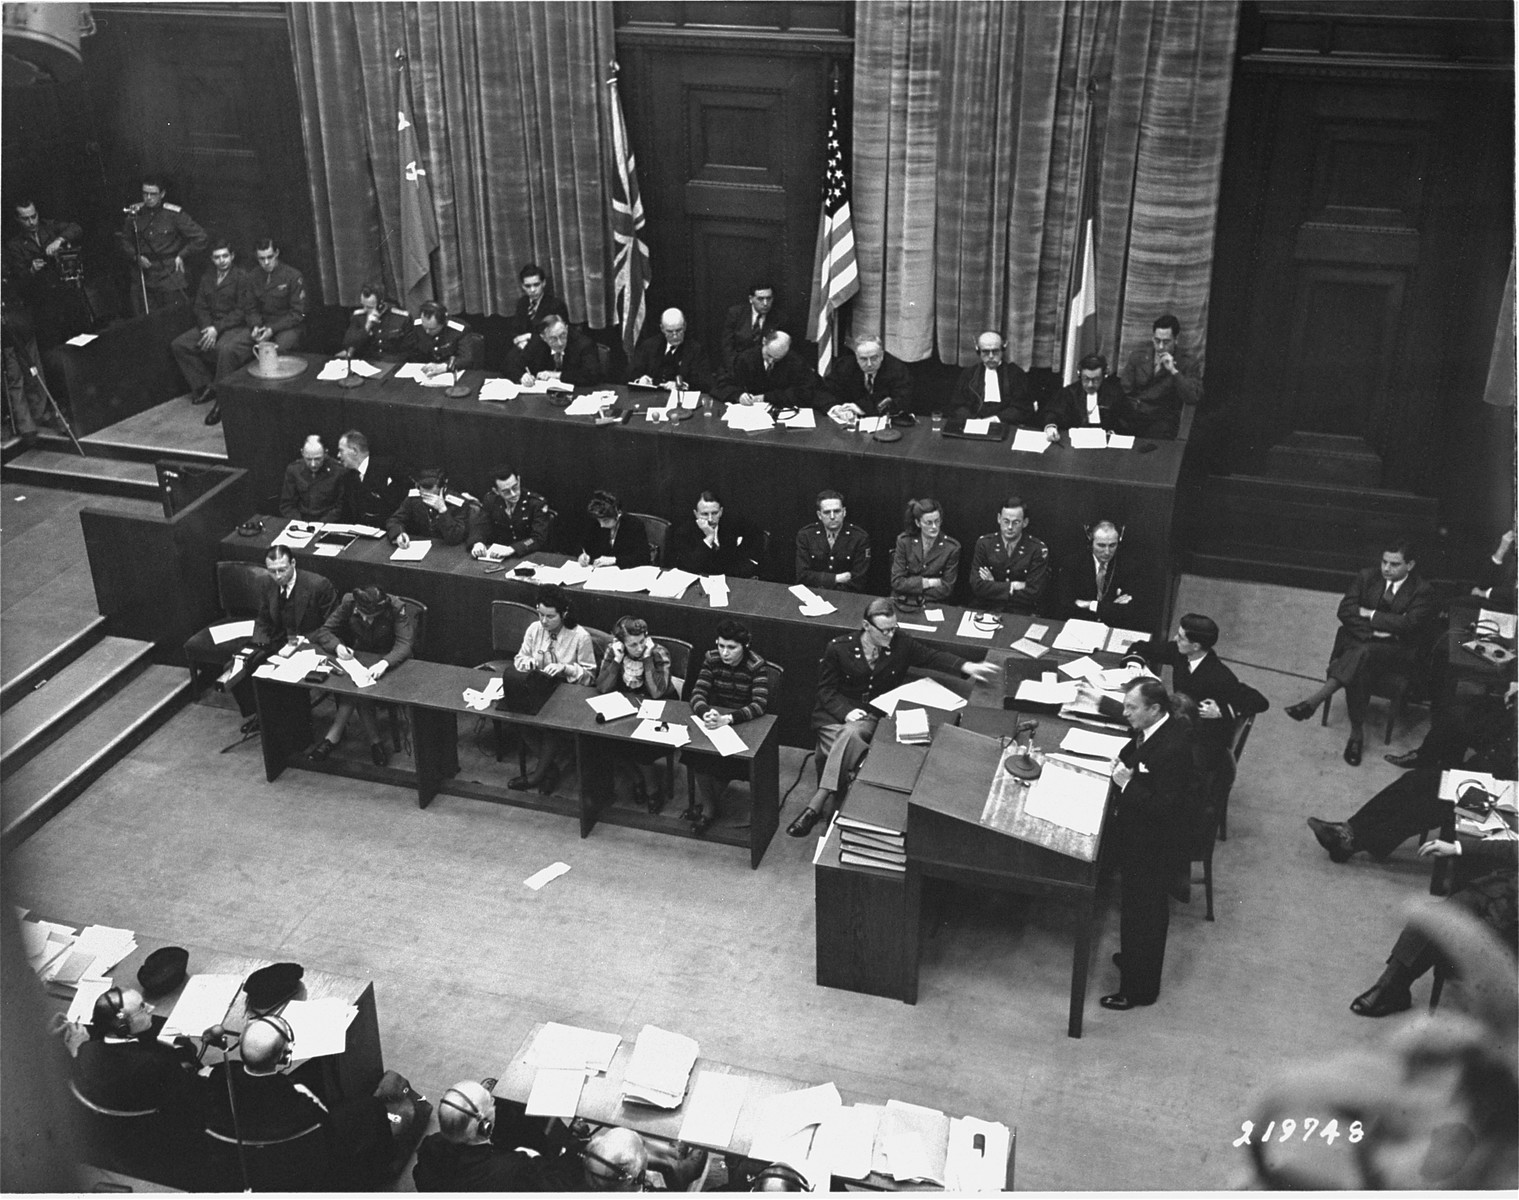 Chief U.S. prosecutor Justice Robert Jackson delivers the prosecution's opening statement at the International Military Tribunal war crimes trial at Nuremberg.